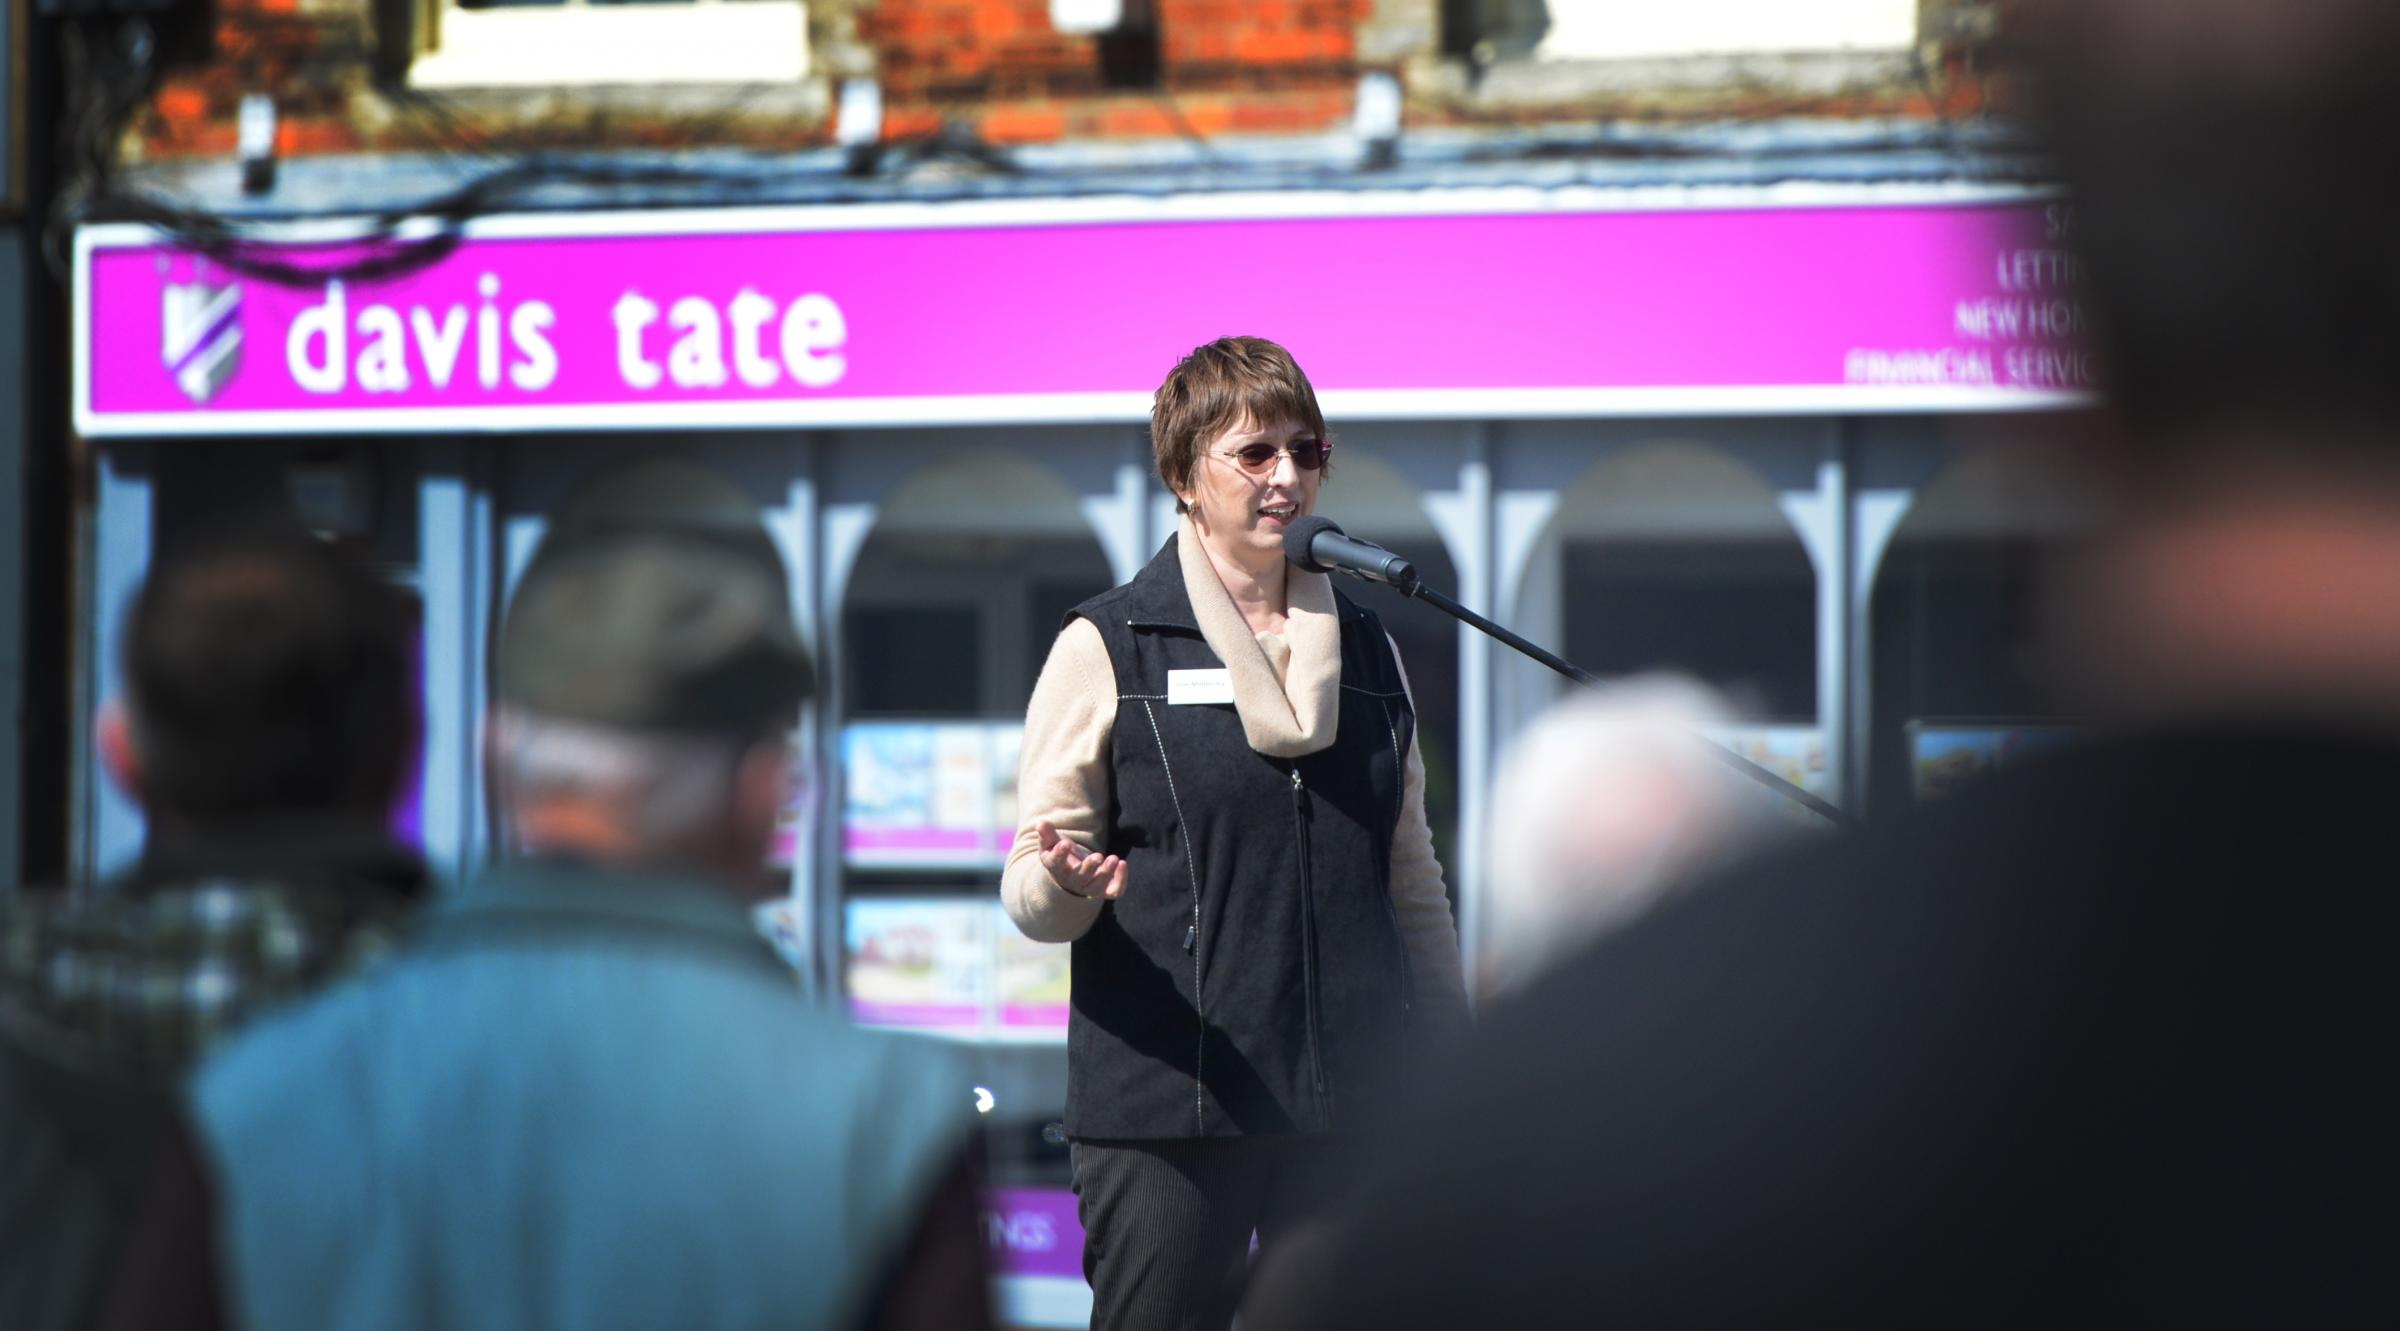 Concerns: Julie Mabberley addresses a rally protesting about large housing developments in Wantage